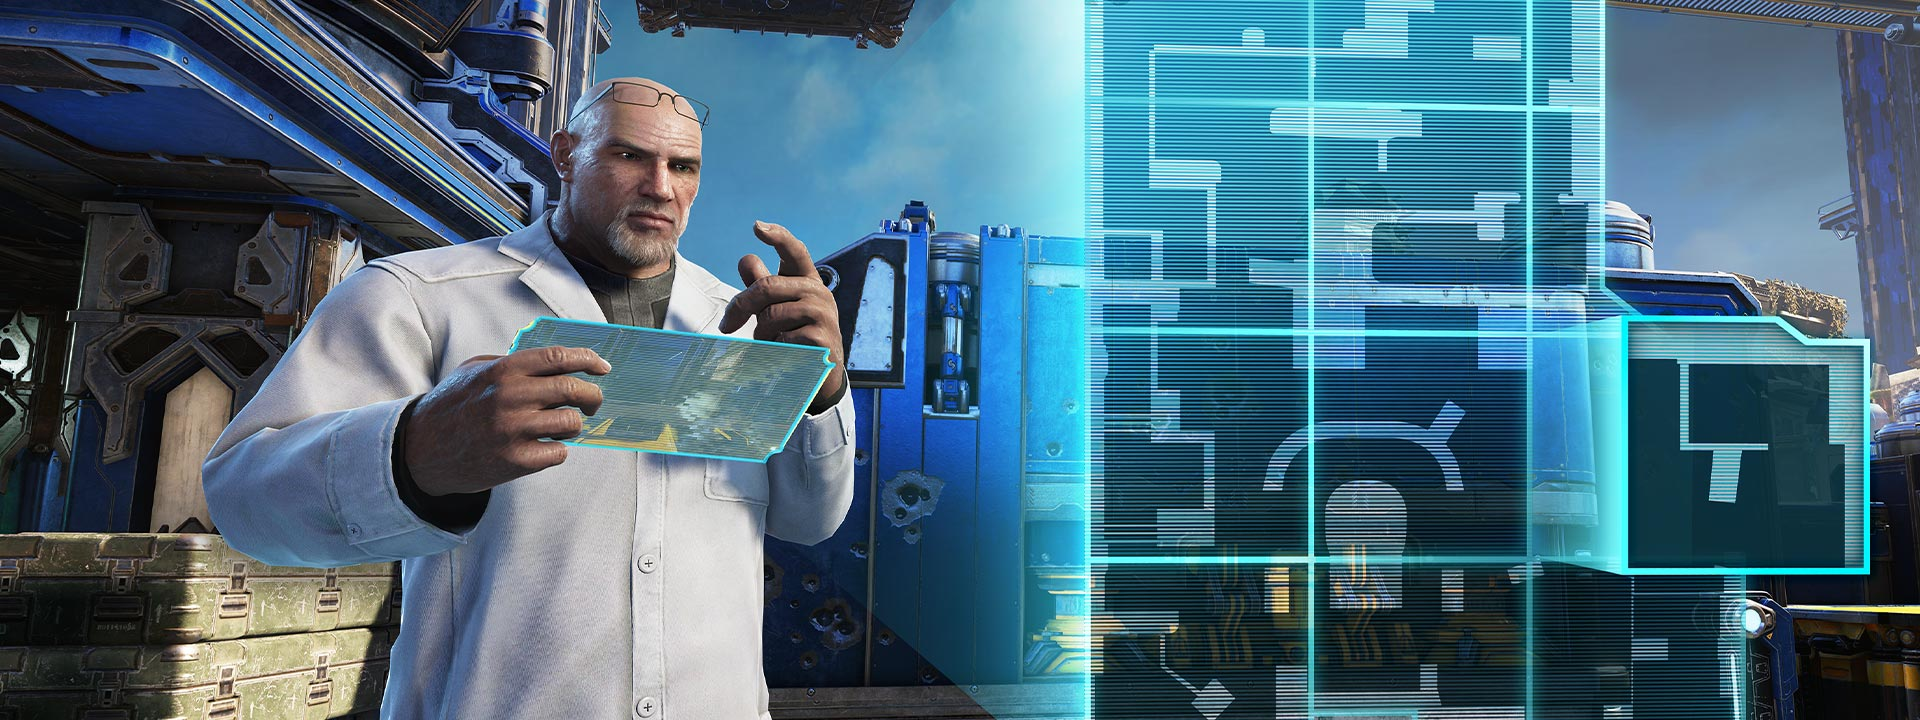 A man in a white lab coat uses a tablet to create a 2d representation of a map